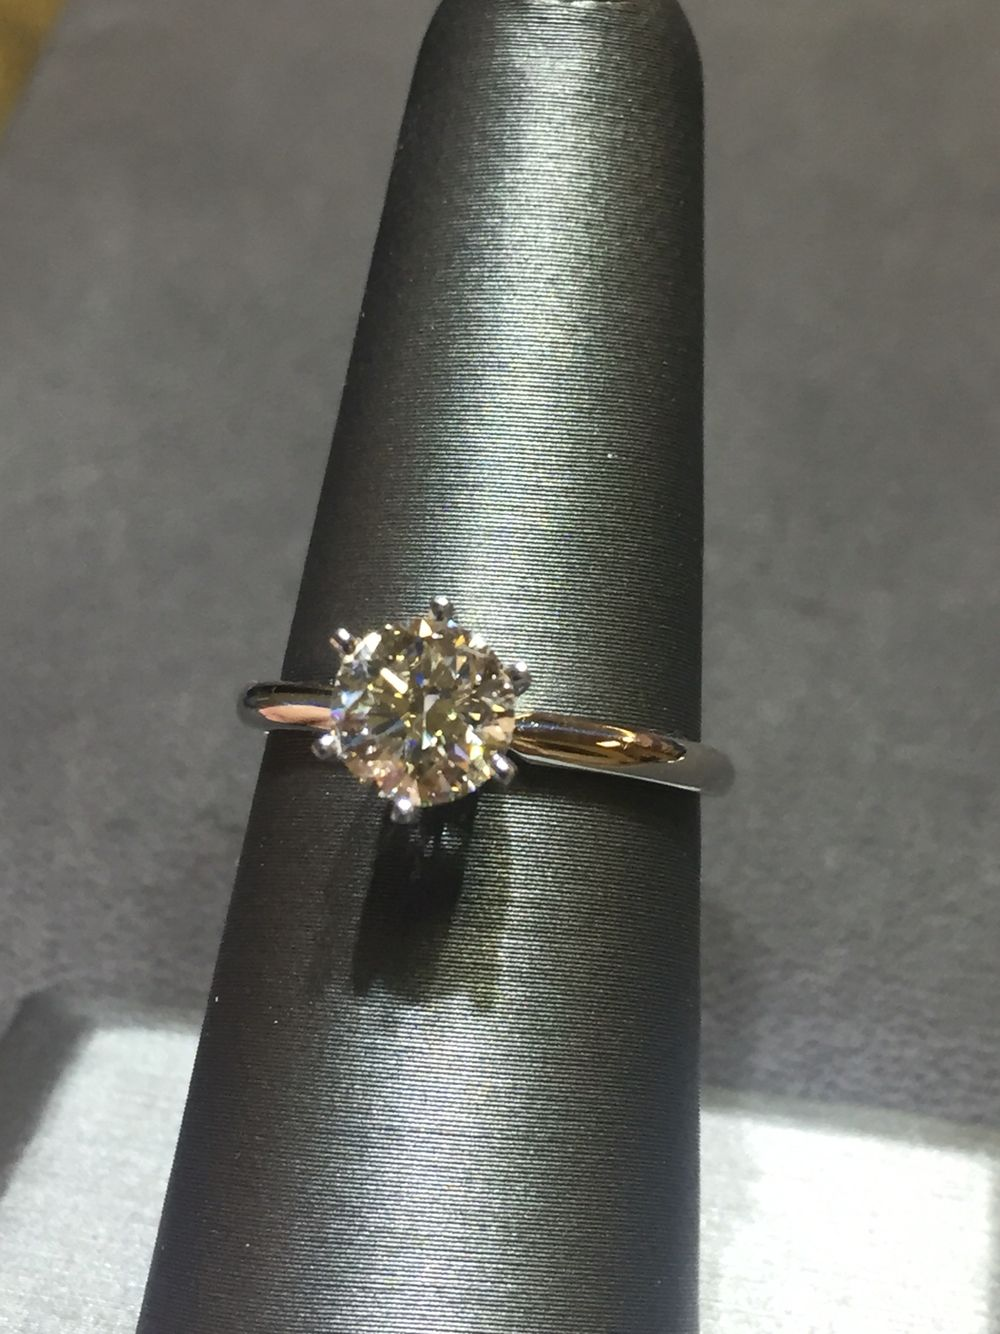 Ladies 14k White Gold Solitaire Ring with a 1.06ct Round Brilliant! Priced at $3,950